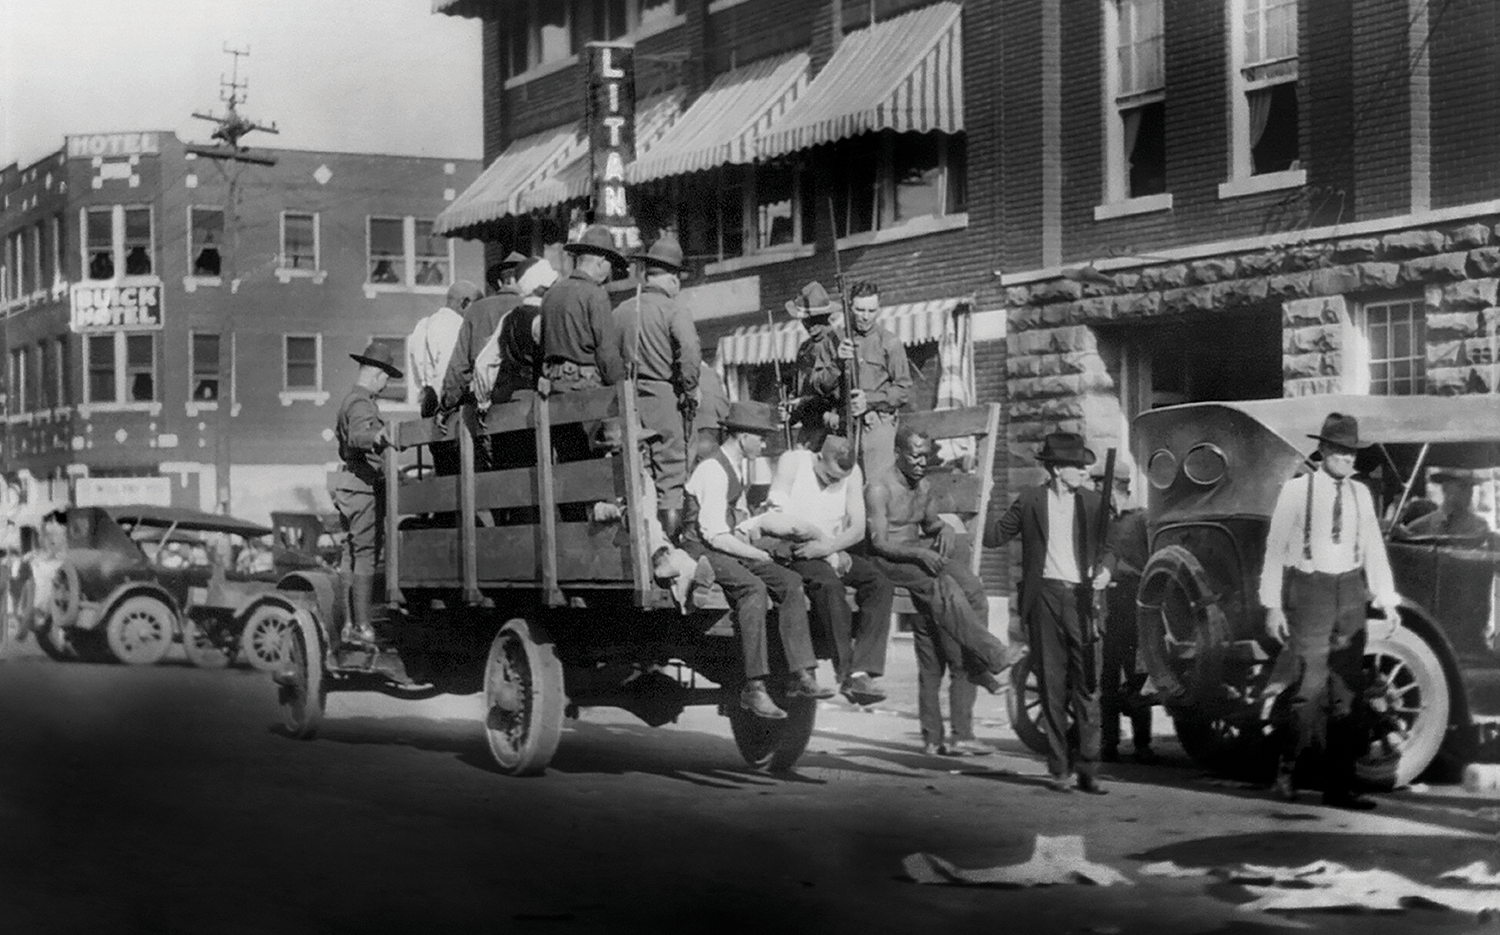 Soldiers guard black residents on a truck in Tulsa.